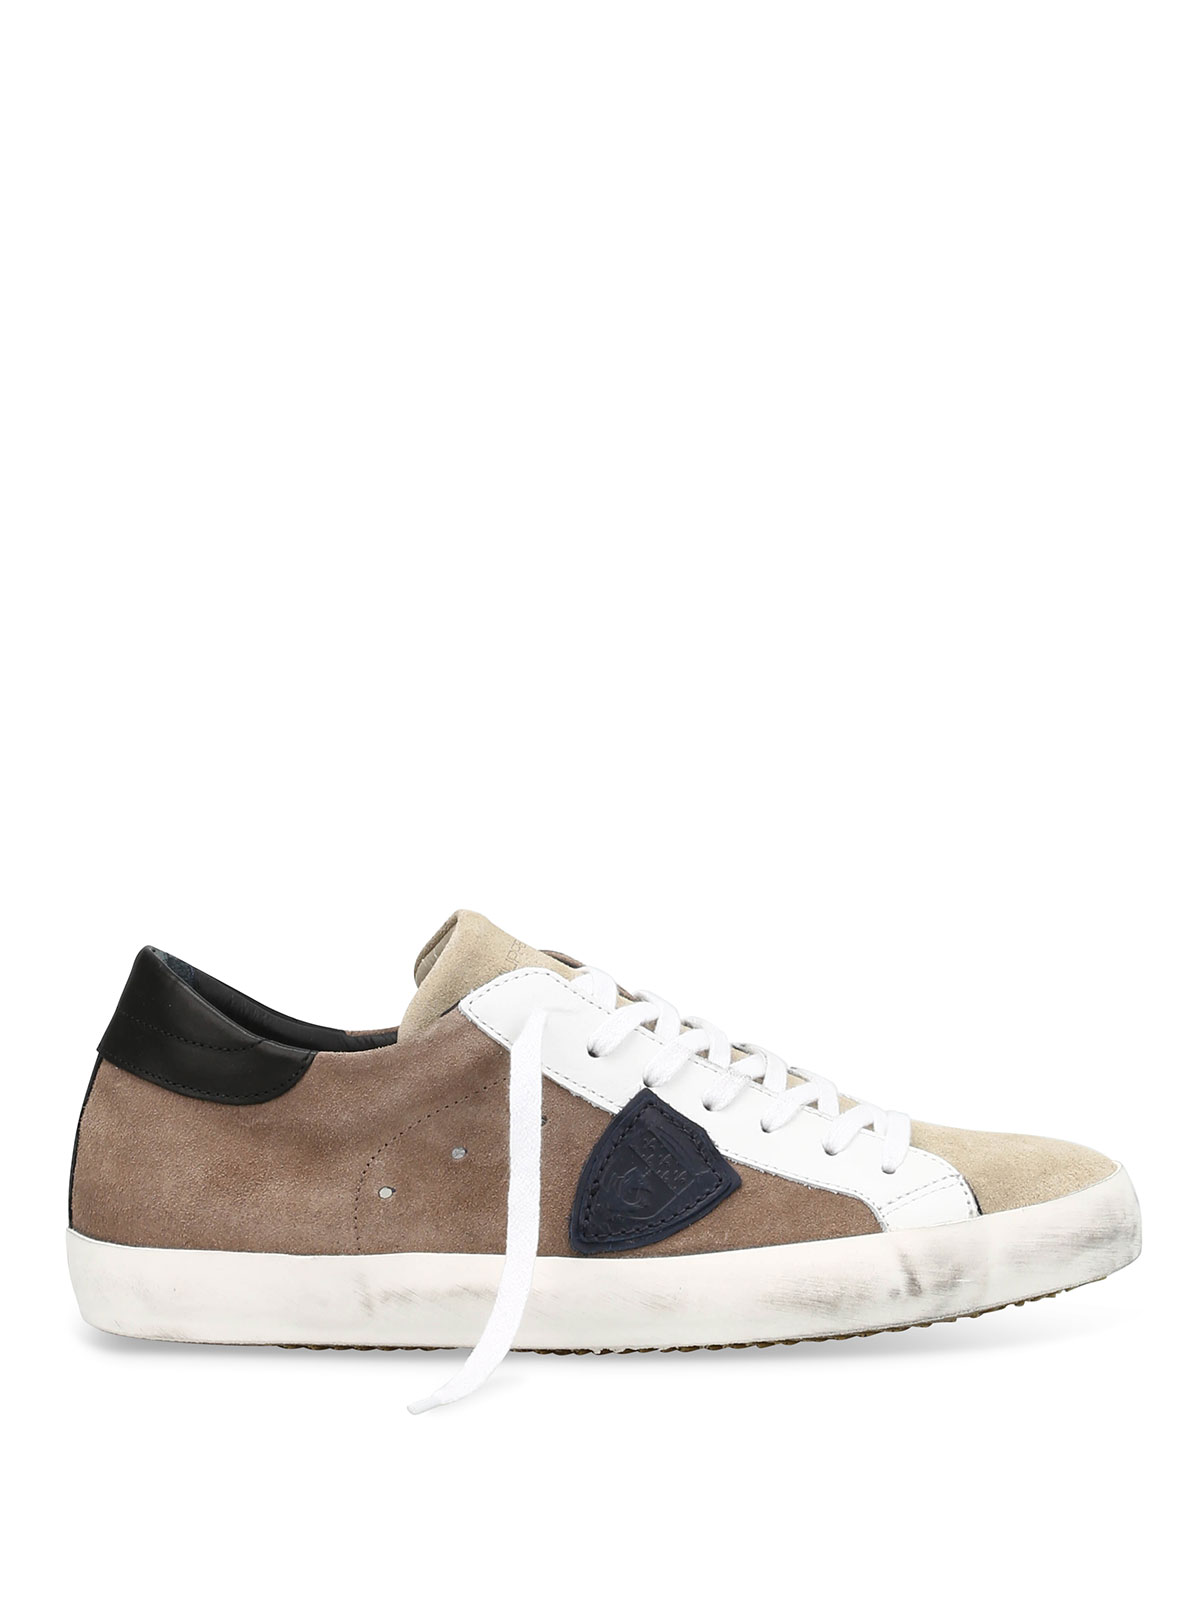 classic suede sneakers by philippe model trainers ikrix. Black Bedroom Furniture Sets. Home Design Ideas